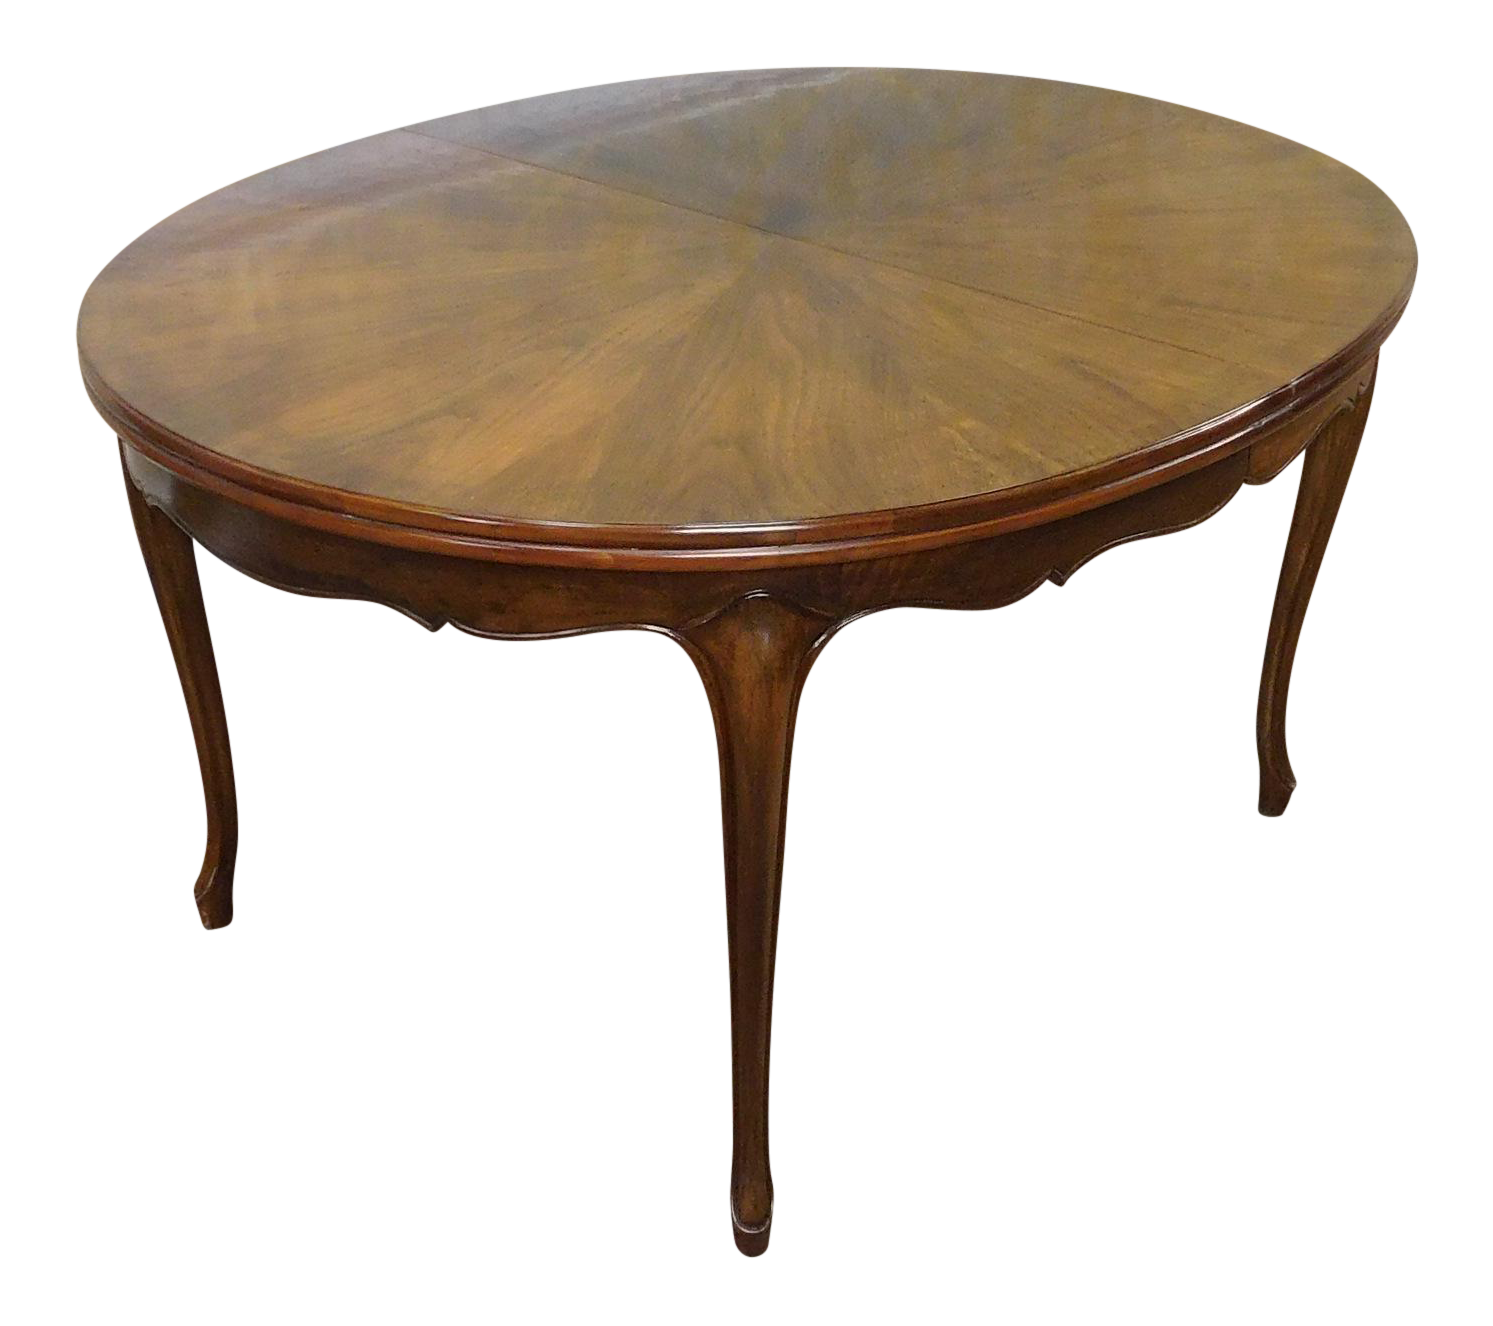 Fruitwood Cherry Oval French Provincial Style Baker Furniture Dining Table  | Chairish - Fruitwood Cherry Oval French Provincial Style Baker Furniture Dining